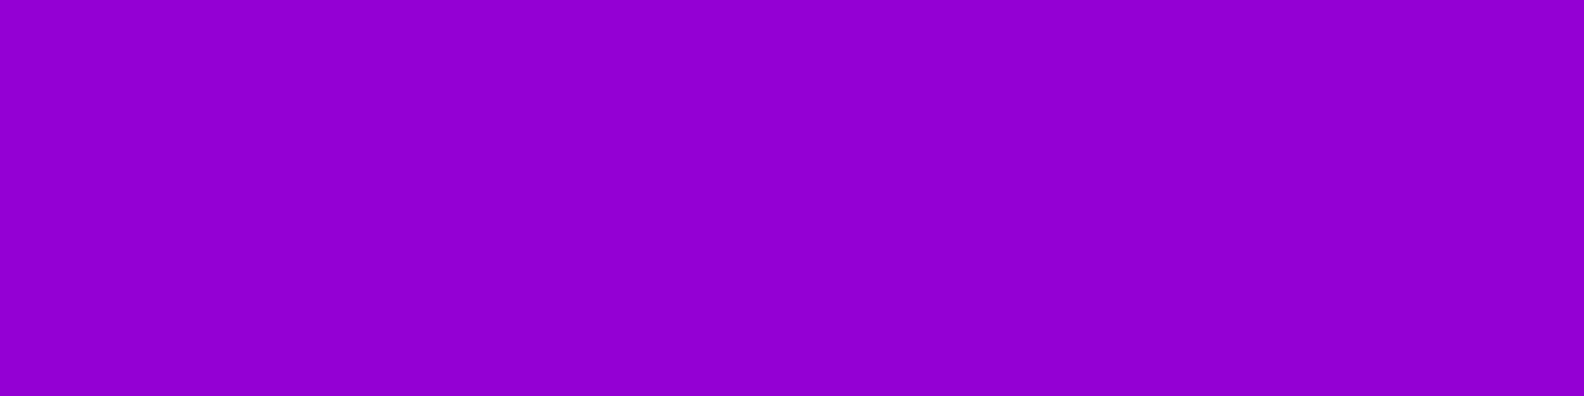 1584x396 Dark Violet Solid Color Background